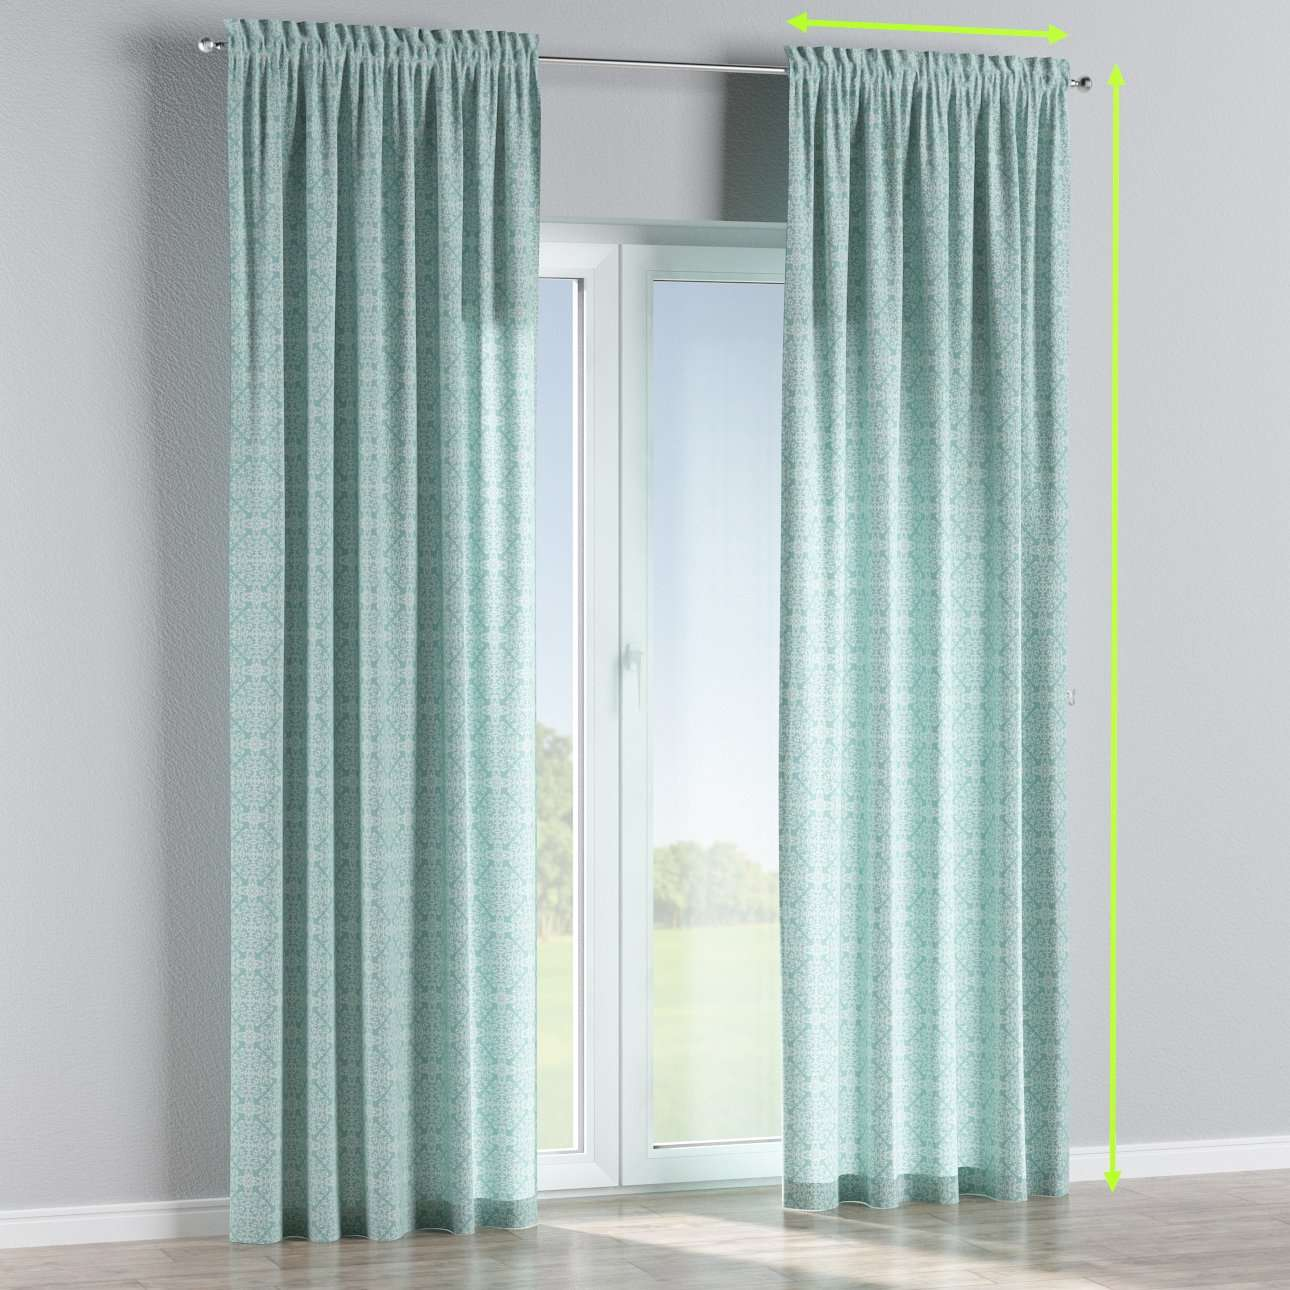 Slot and frill lined curtains in collection Flowers, fabric: 140-37